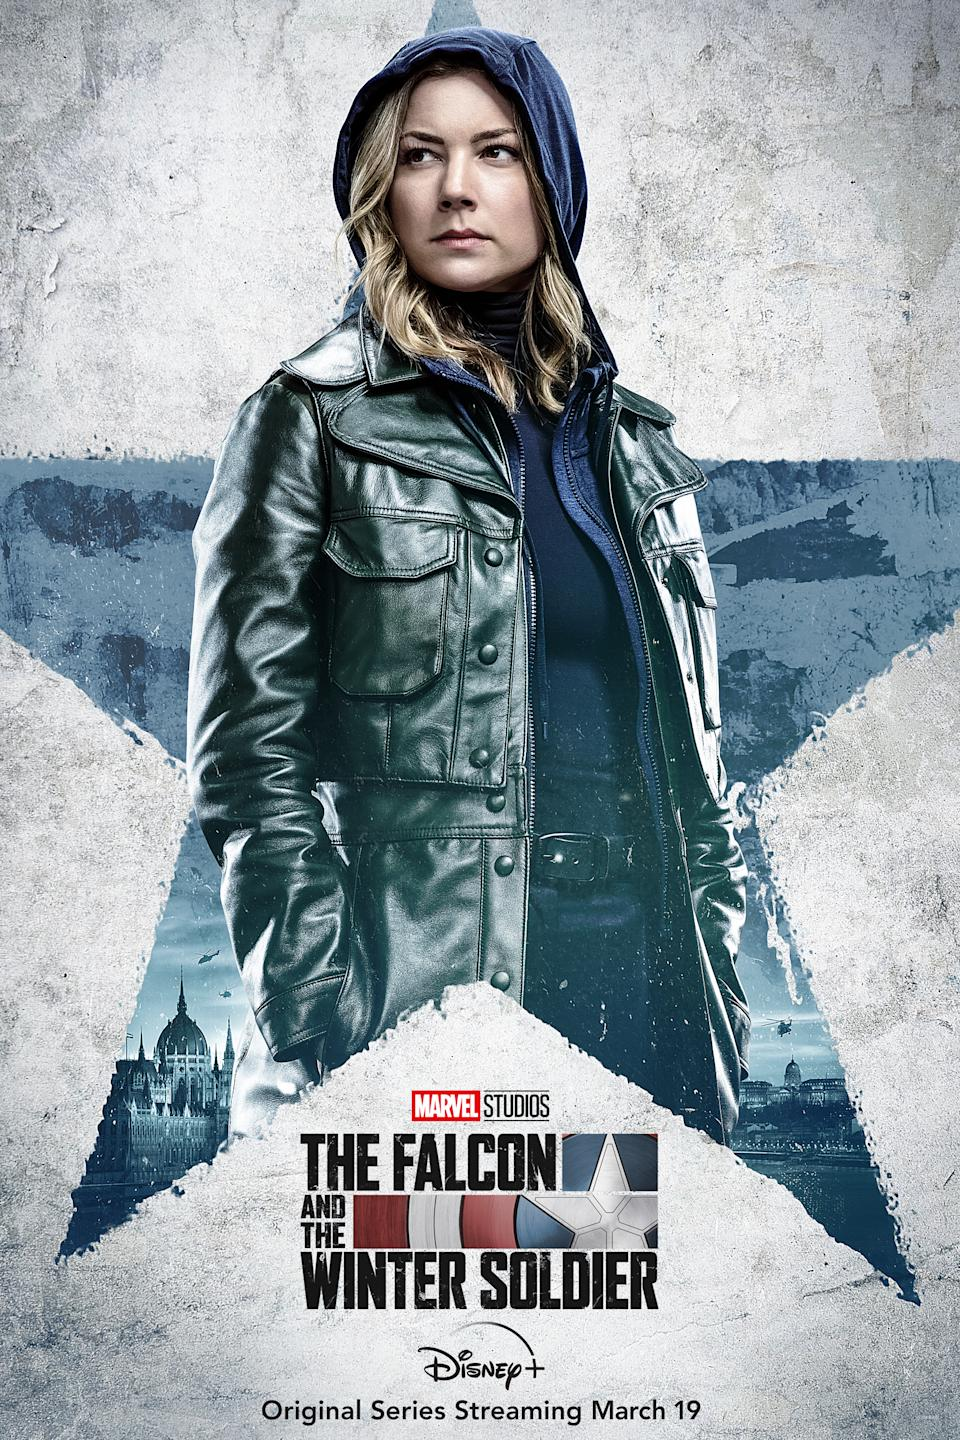 Emily VanCamp as Sharon Carter in character posters for Marvel Studios' Disney+ series, The Falcon And The Winter Soldier.